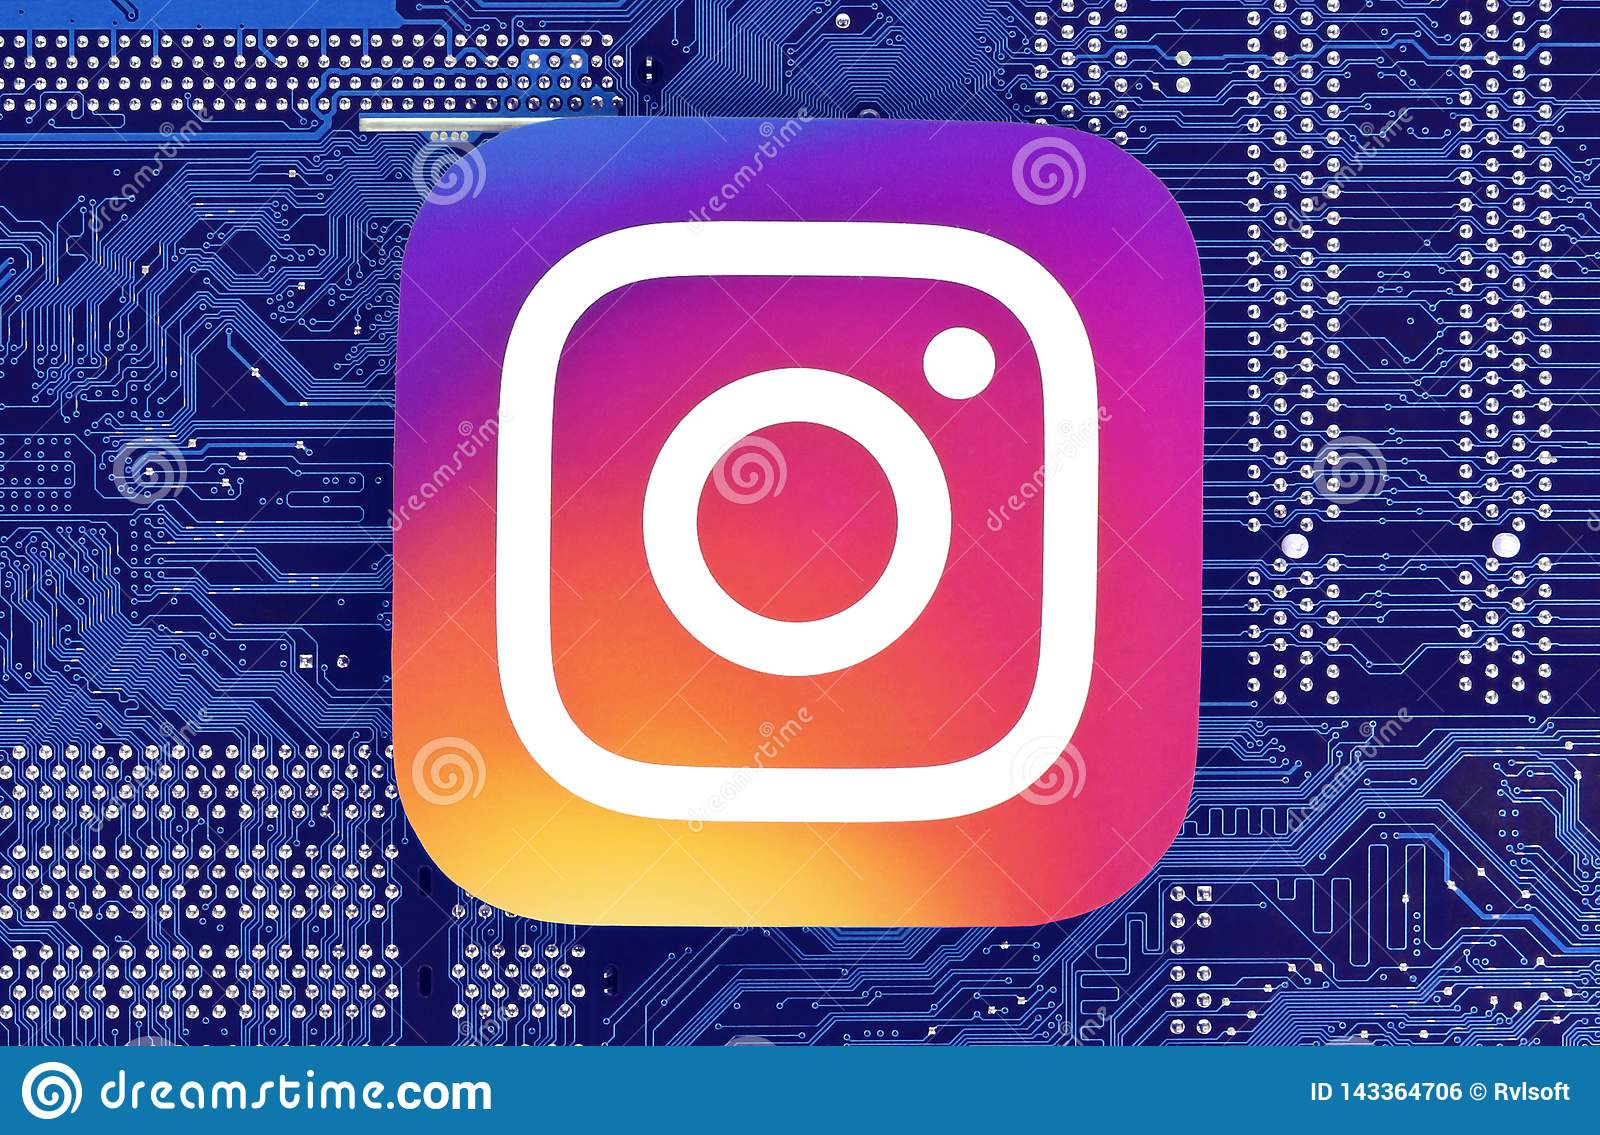 Instagram icon placed on circuit board